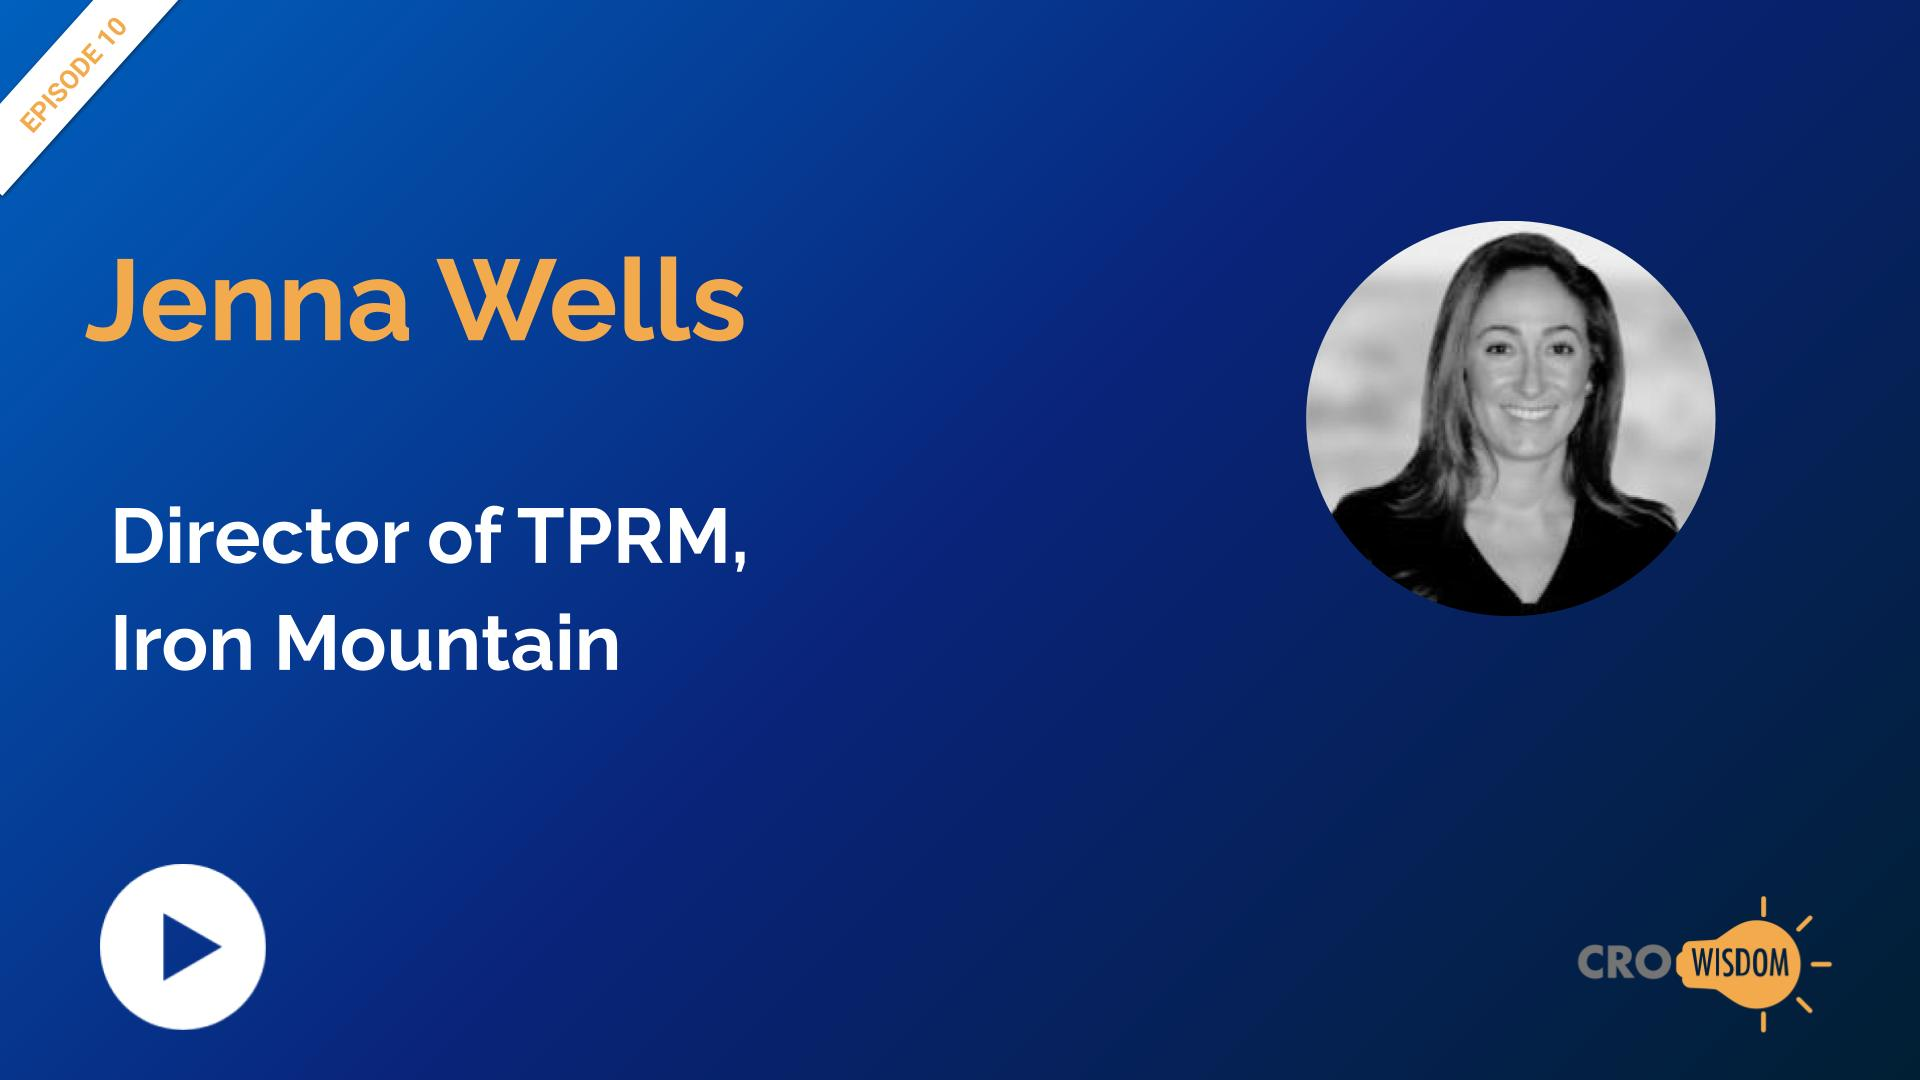 CRO Wisdom Episode 10 with Jenna Wells, Director of TPRM, Iron Mountain